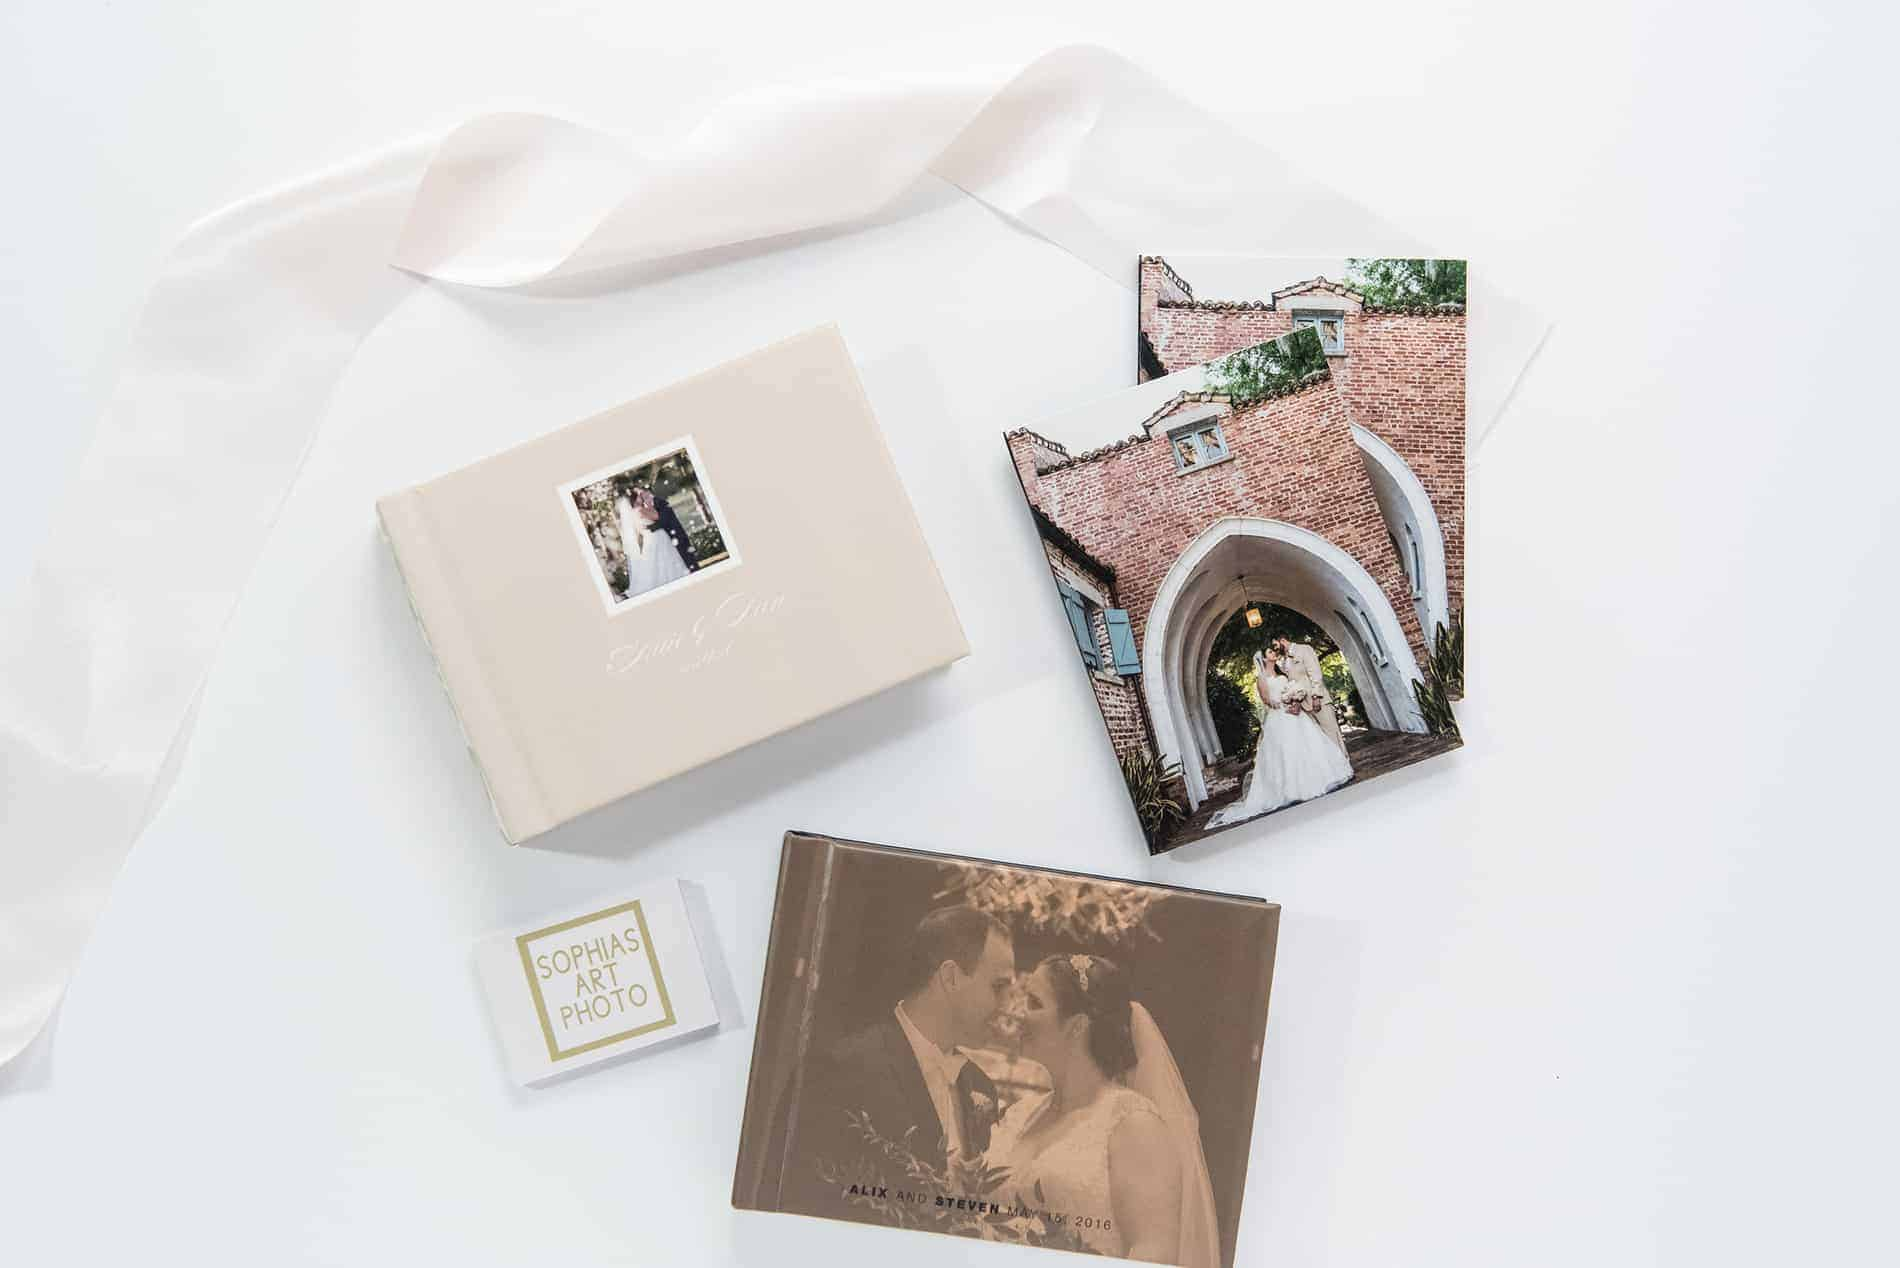 Family keepsakes designed by your Orlando Wedding Photographers